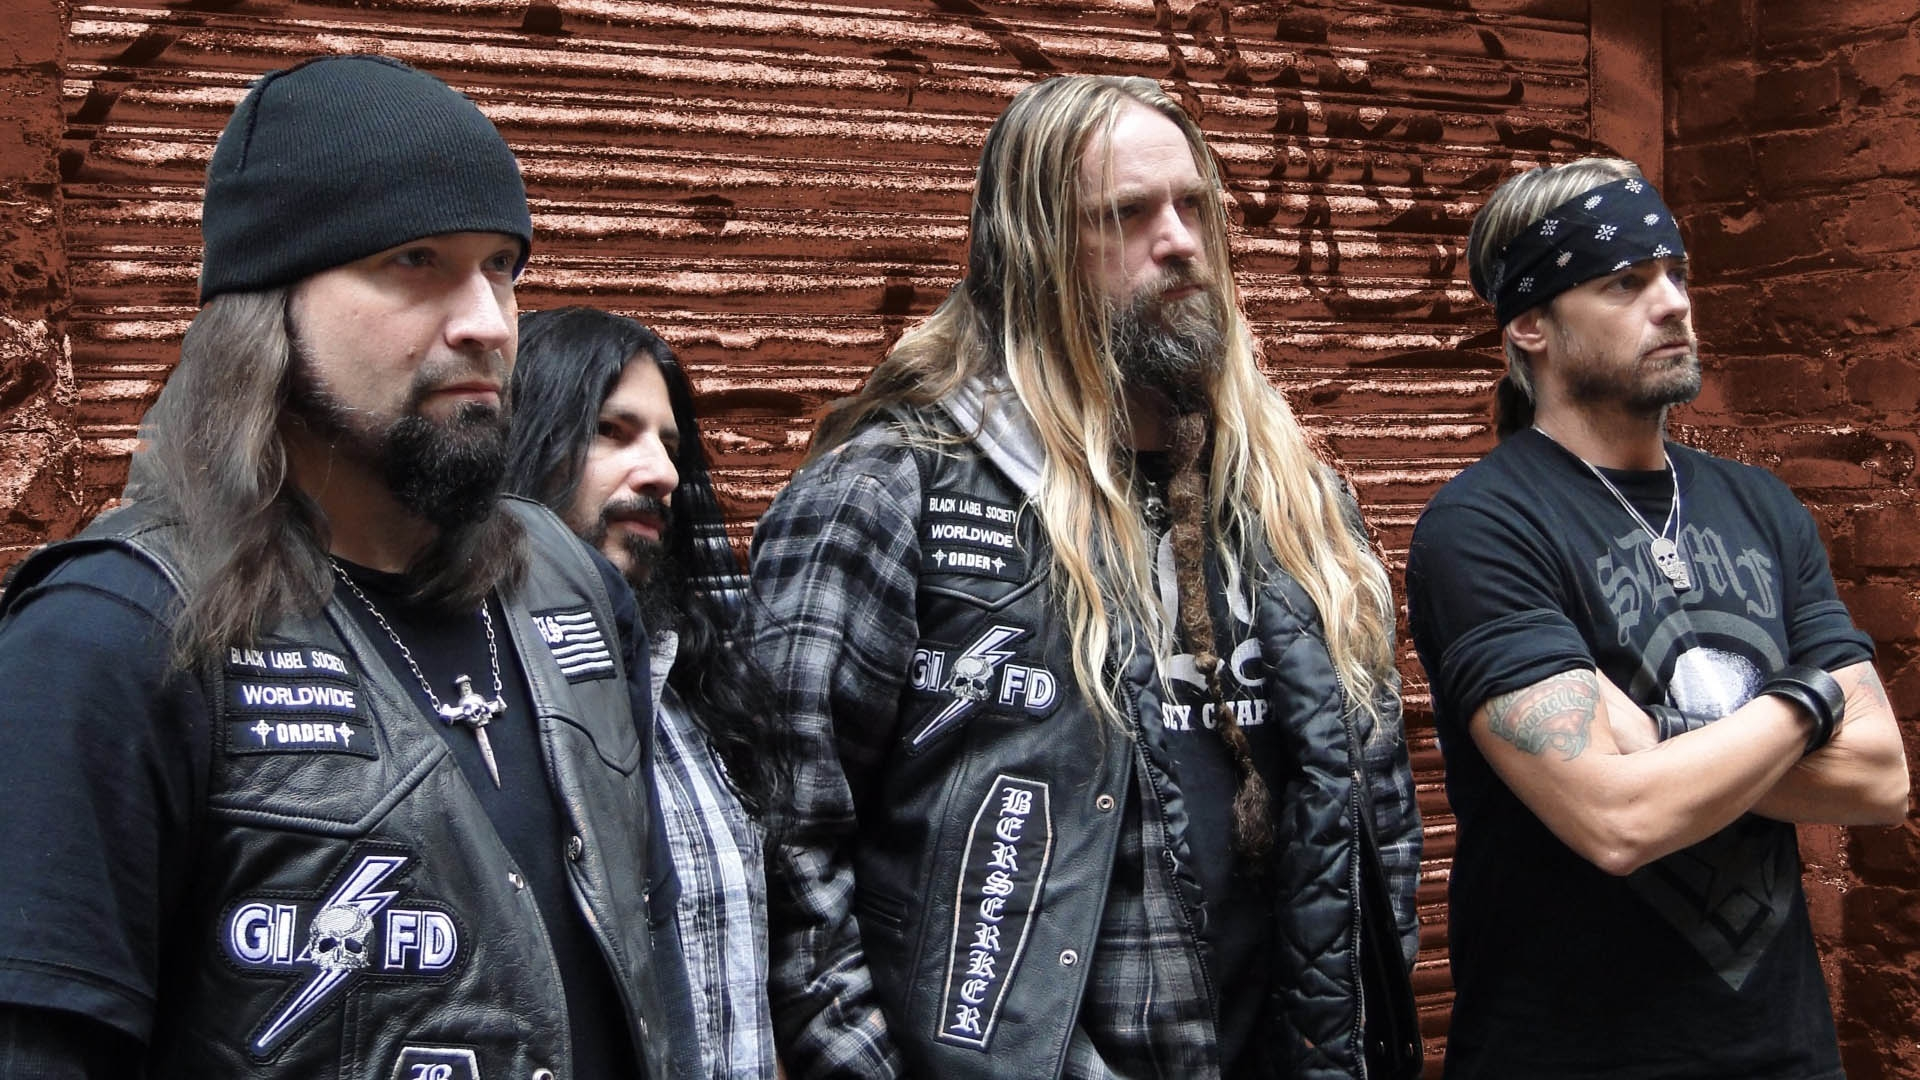 Download Wallpaper 1920x1080 black label society, jackets, hair ...